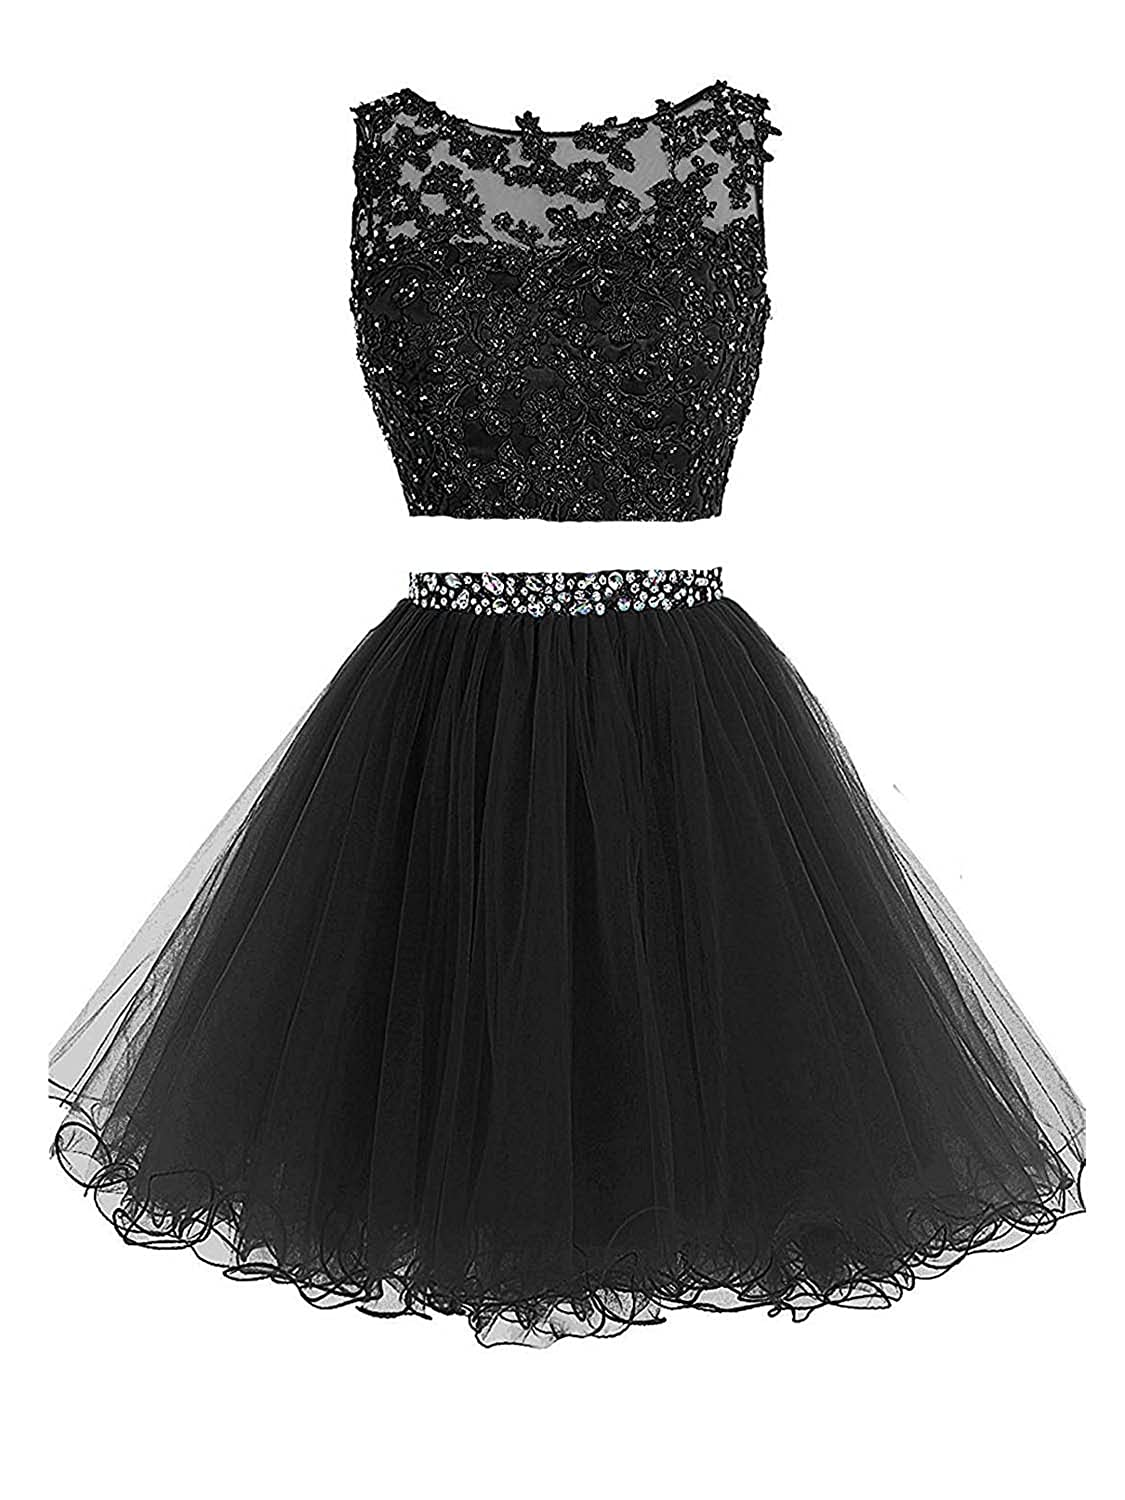 ea47522b7d0 Sweetylife Short Prom Party Dress Graduation Homecoming Dress with Lace  Applique Beaded and Sequins Above Knee Length N002 at Amazon Women s  Clothing store